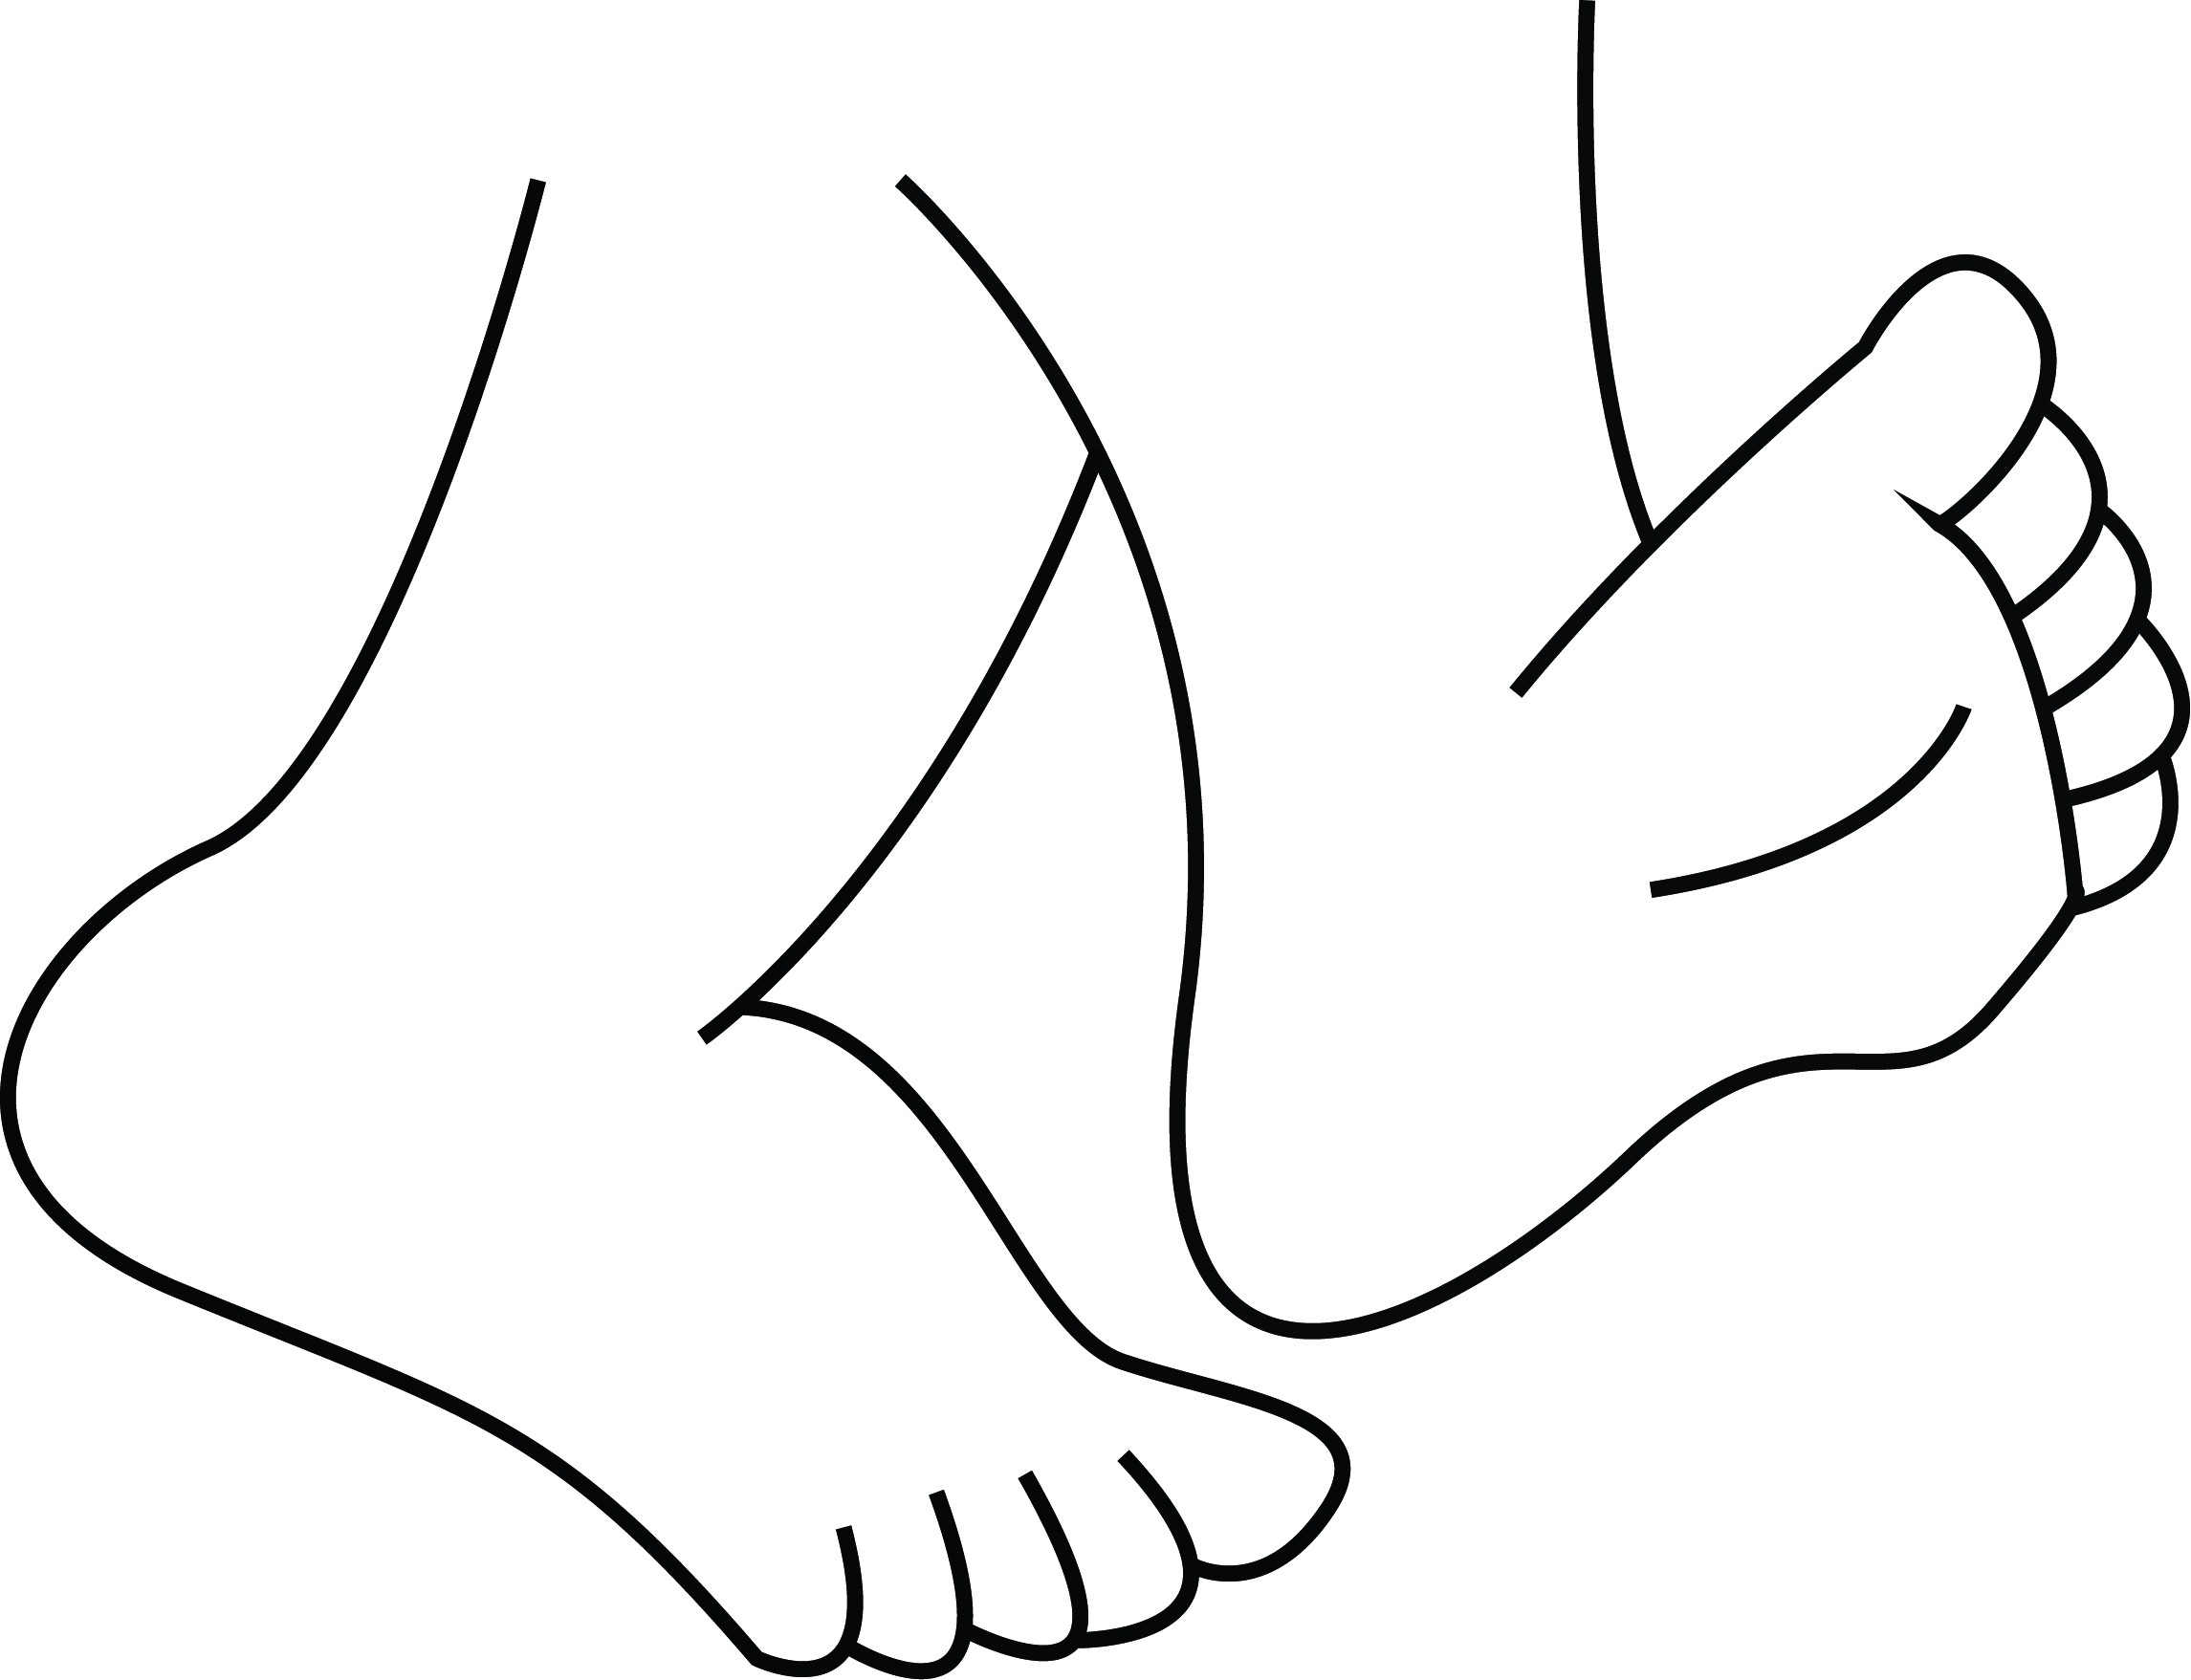 Feet on the ground clipart black and white graphic black and white library Feet Walking Drawing | Free download best Feet Walking Drawing on ... graphic black and white library